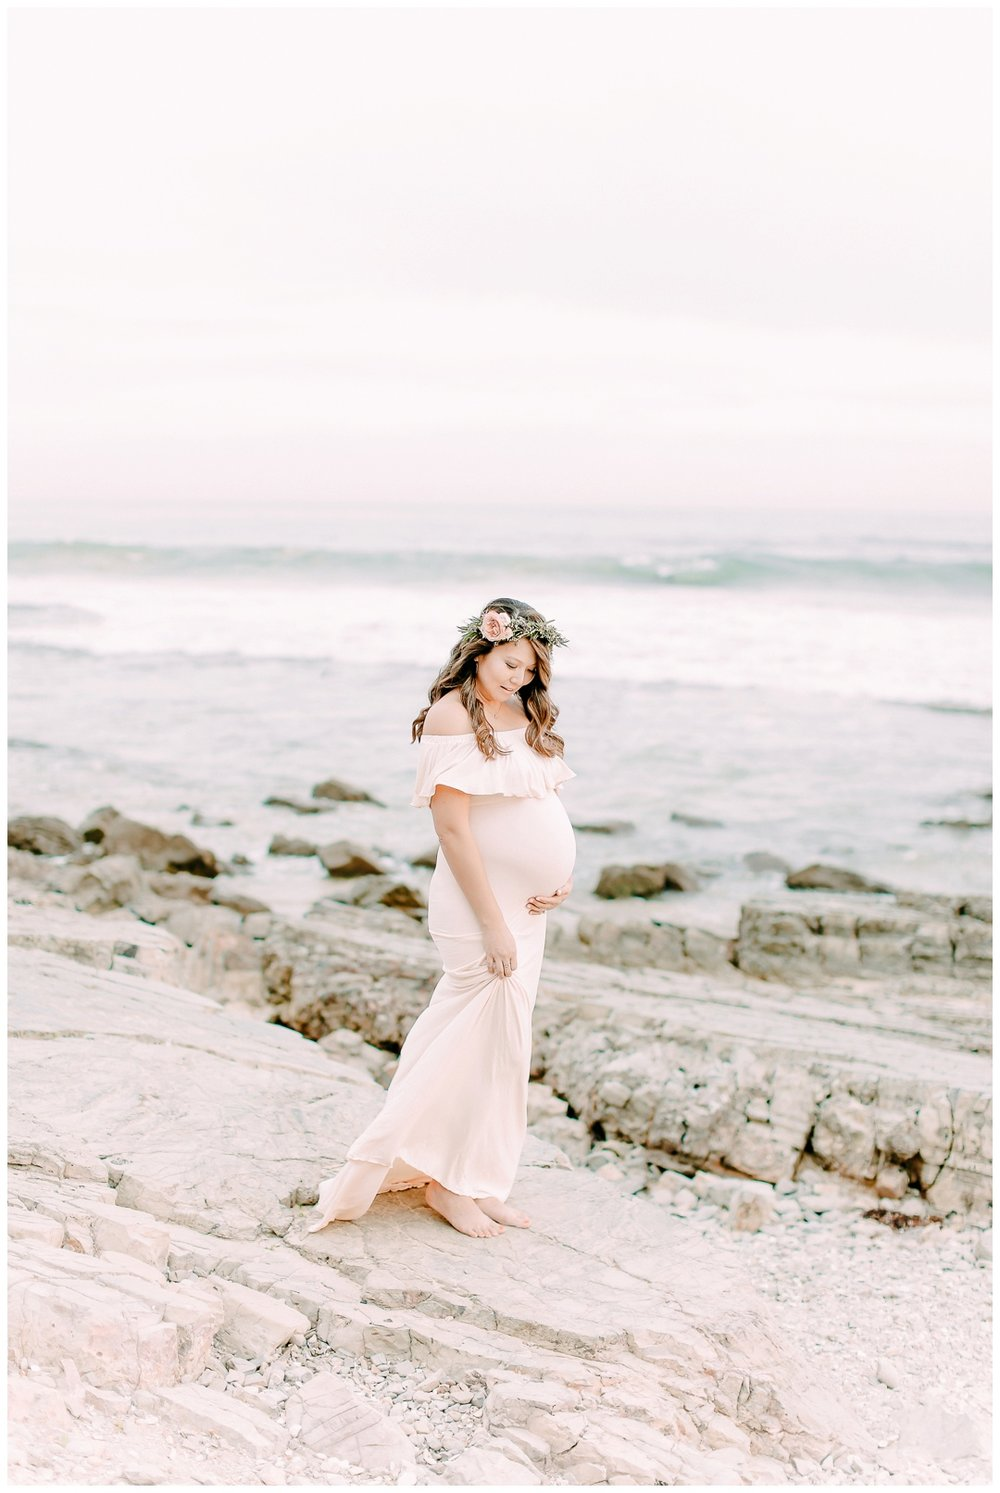 Newport_Beach_Maternity_Photographer_Orange_County_Maternity_Photography_Cori_Kleckner_Photography_Orange_County_Family_Photographer_Beach_Maternity_Session_1135.jpg